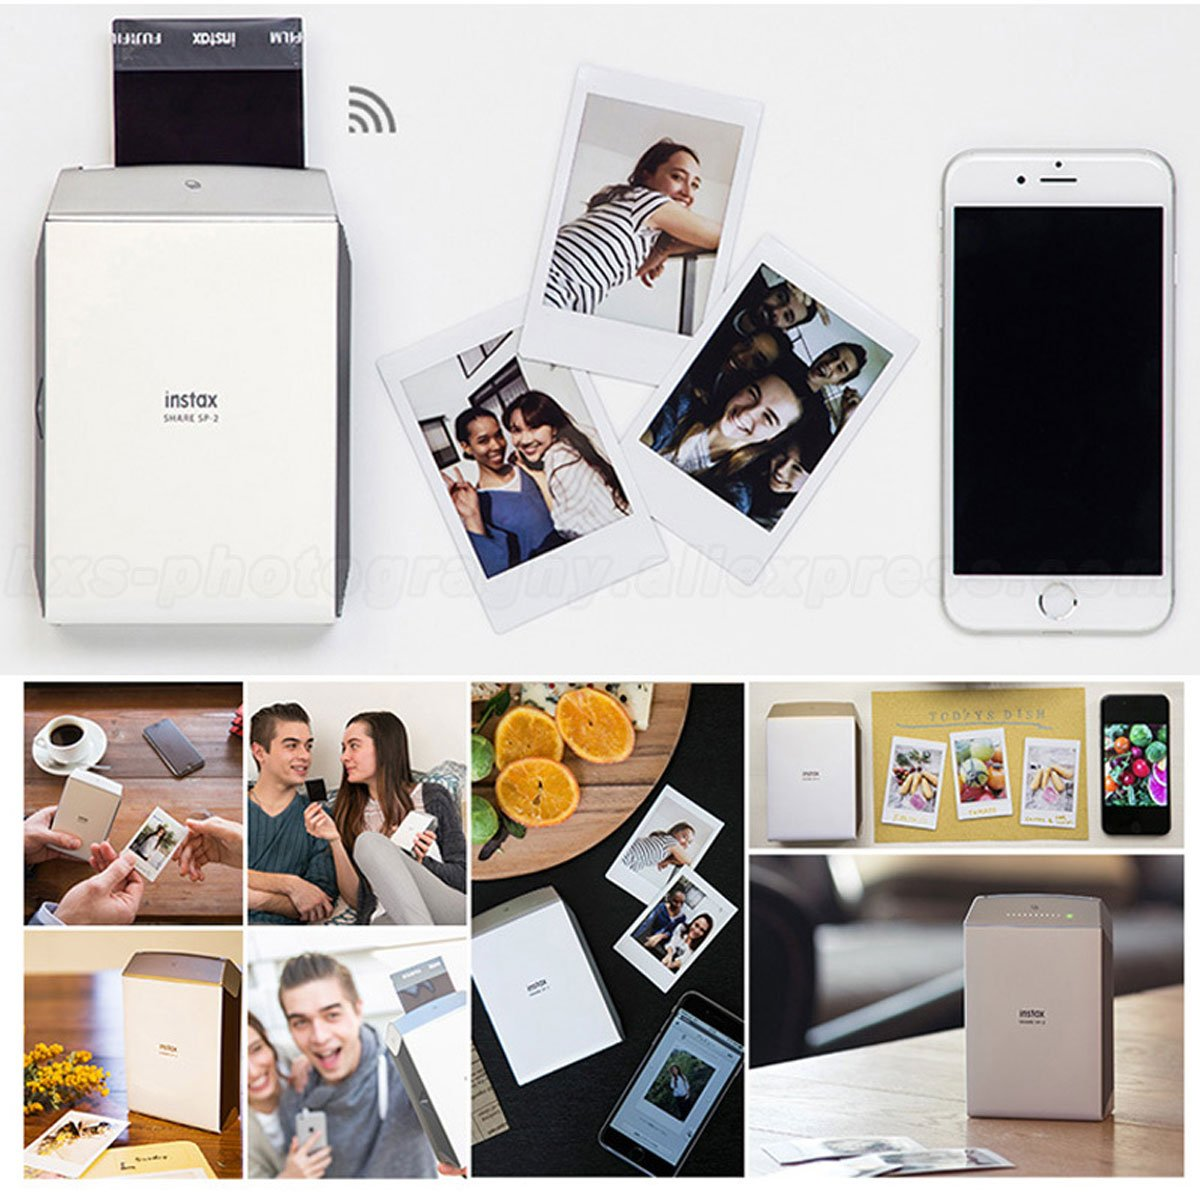 Low Power Consuming Portable Fujifilm INSTAX Smartphone Printer